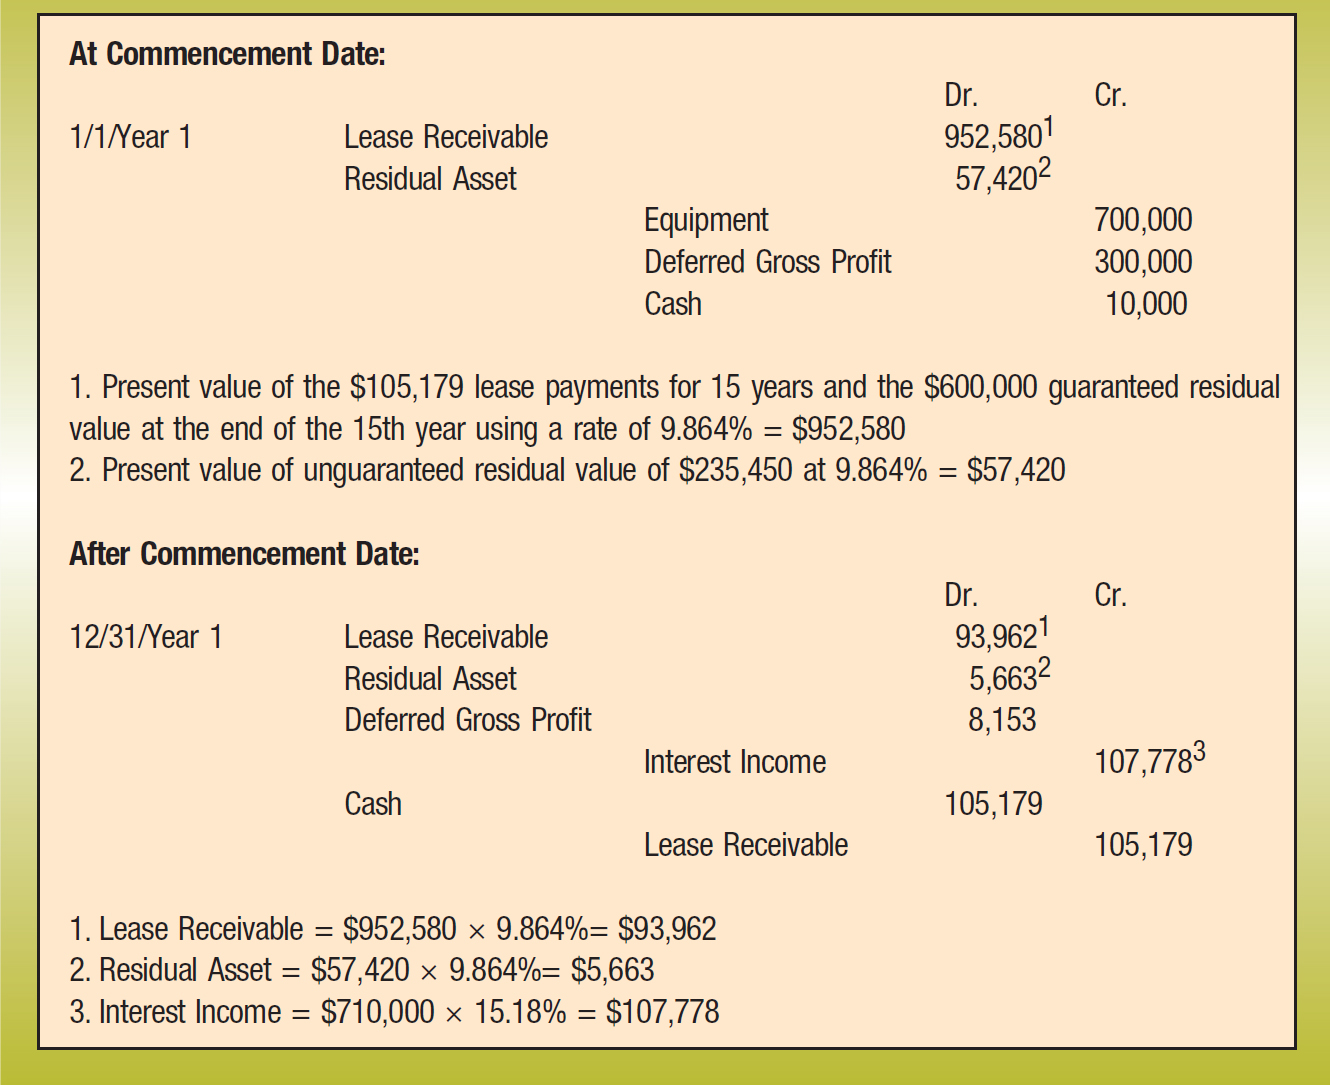 At Commencement Date: Dr.; Cr. 1/1/Year 1; Lease Receivable; 952,5801 Residual Asset; 57,4202 Equipment; 700,000 Deferred Gross Profit; 300,000 Cash; 10,000 1. Present value of the $105,179 lease payments for 15 years and the $600,000 guaranteed residual value at the end of the 15th year using a rate of 9.864% = $952,580 2. Present value of unguaranteed residual value of $235,450 at 9.864% = $57,420 After Commencement Date: Dr.; Cr. 12/31/Year 1; Lease Receivable; 93,9621 Residual Asset; 5,6632 Deferred Gross Profit; 8,153 Interest Income; 107,7783 Cash; 105,179 Lease Receivable; 105,179 1. Lease Receivable = $952,580 × 9.864%= $93,962 2. Residual Asset = $57,420 × 9.864%= $5,663 3. Interest Income = $710,000 × 15.18% = $107,778